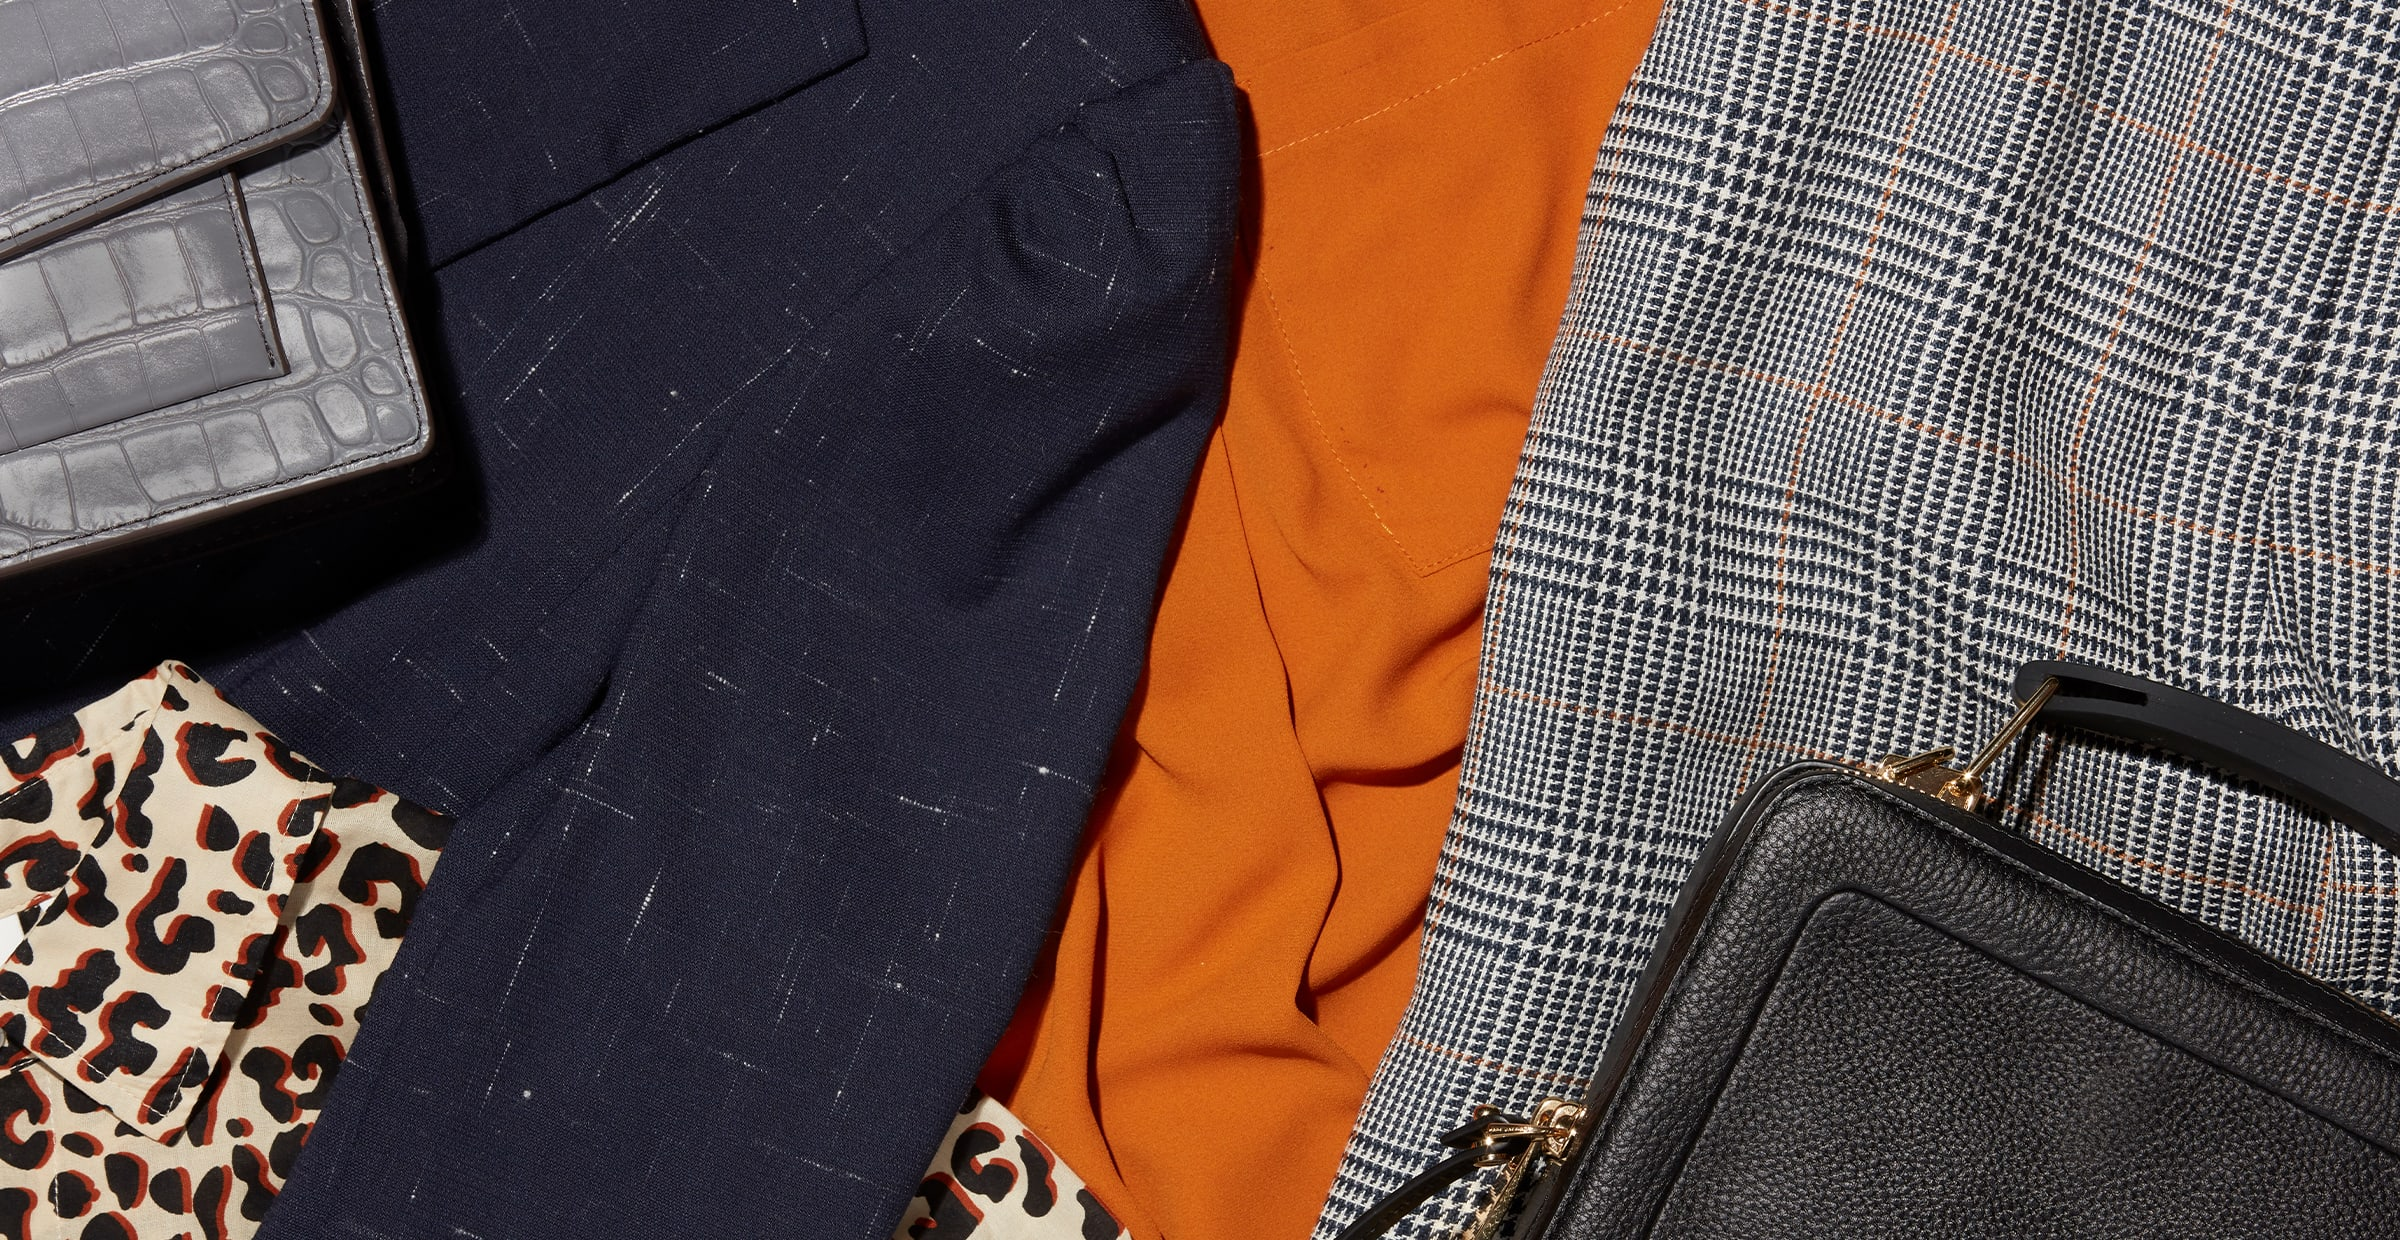 Winter Workwear That You'll Look Forward to Wearing